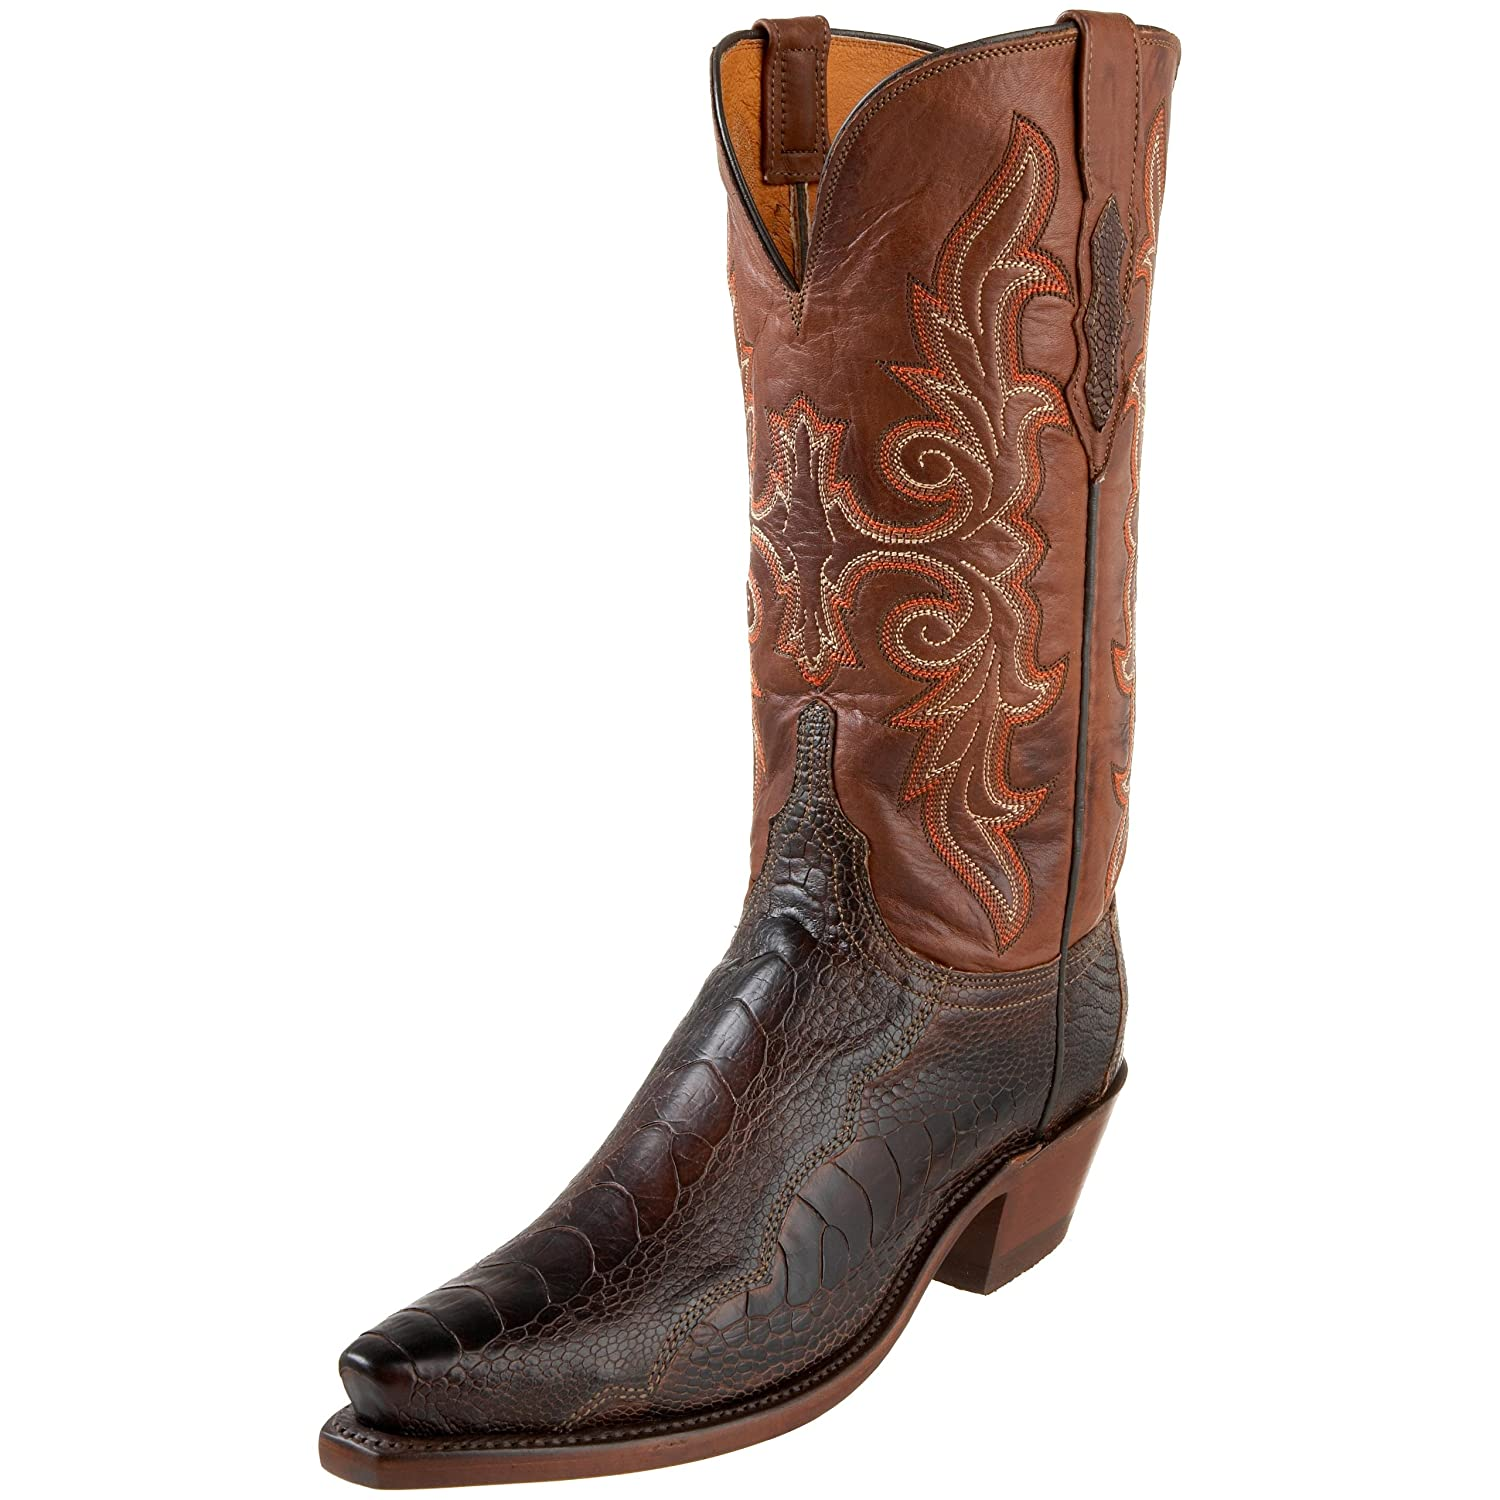 d98fe20f737 Amazon.com   1883 by Lucchese Women's N4064 5/4 Western Boot   Mid-Calf